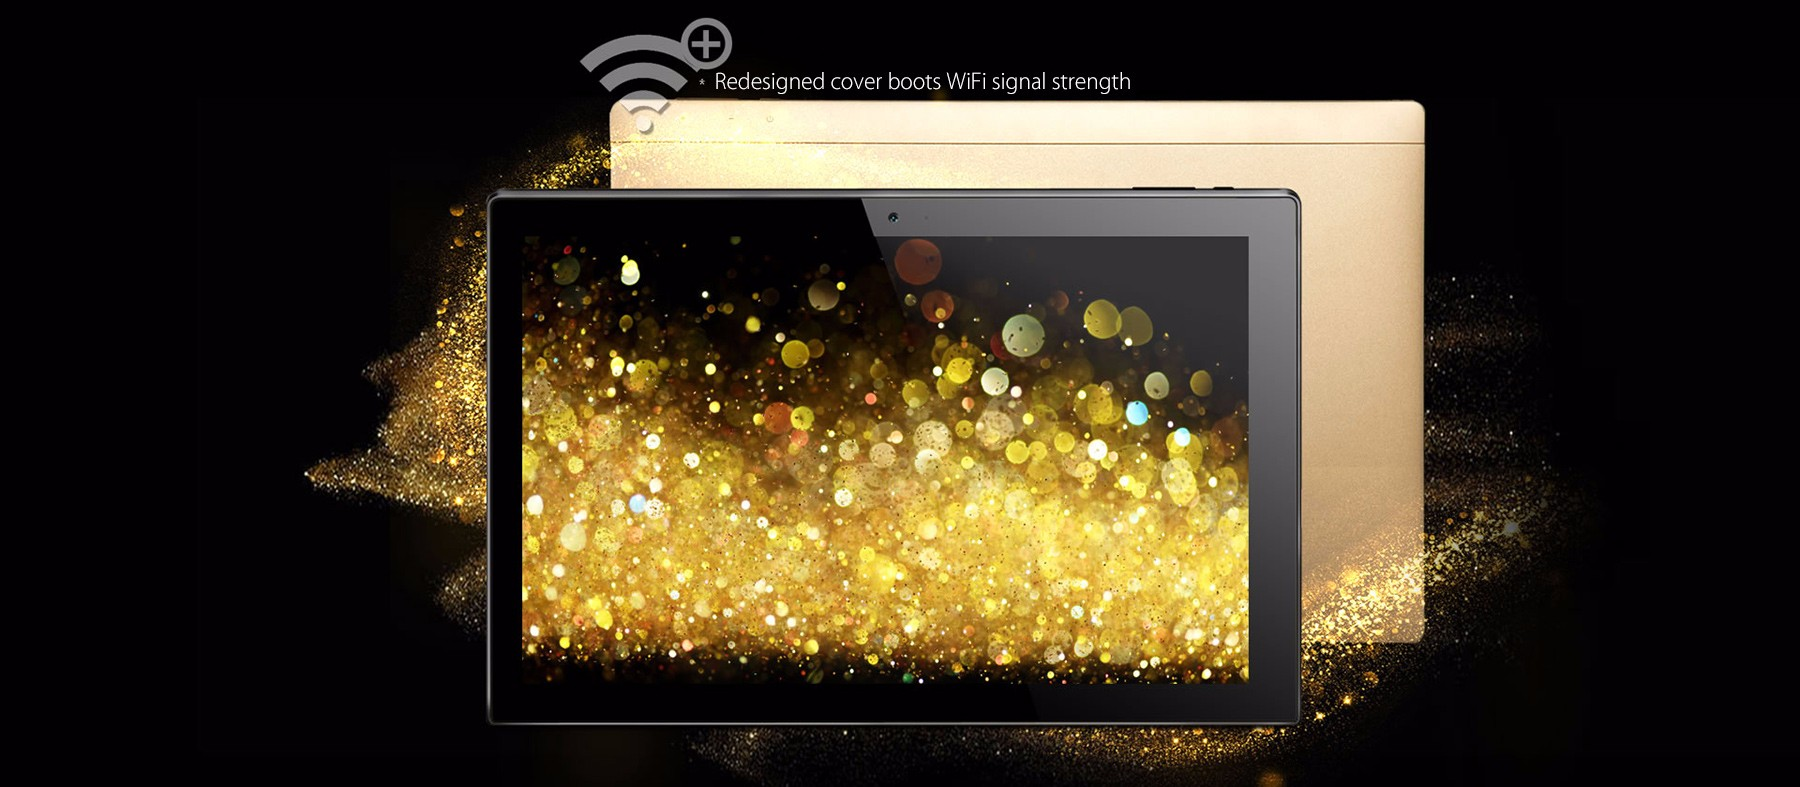 Onda Obook 20 Plus Tablet Pc 19811 Free Shipping Wire Christmas Lights Wiring Review Ebooks 101 Inch Windows10 Remix Intel Cherry Trail Z8300